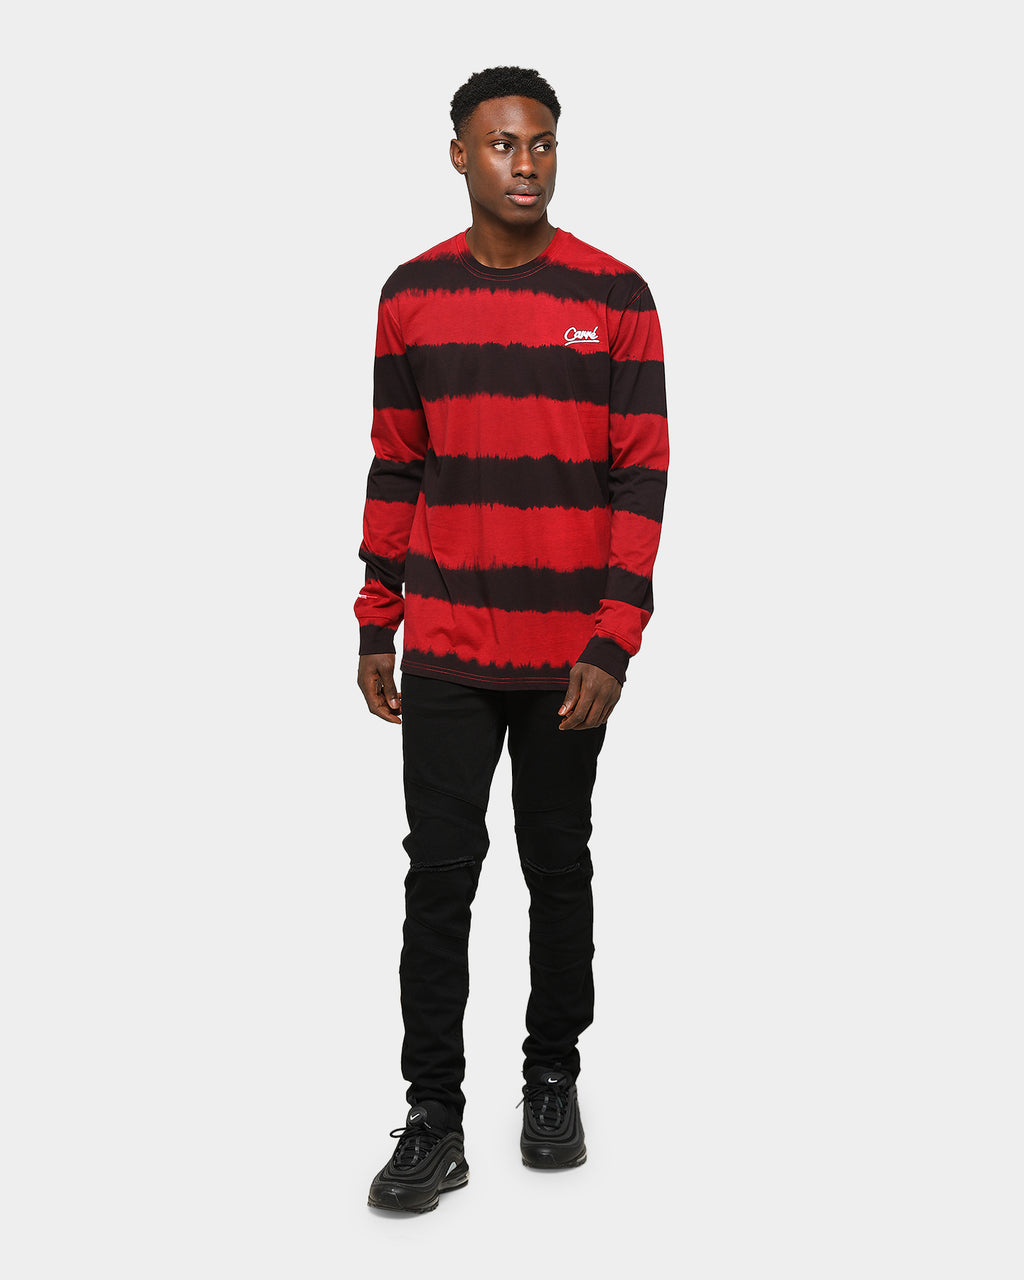 Carré Vague Classique Long Sleeve T-Shirt Red/Black